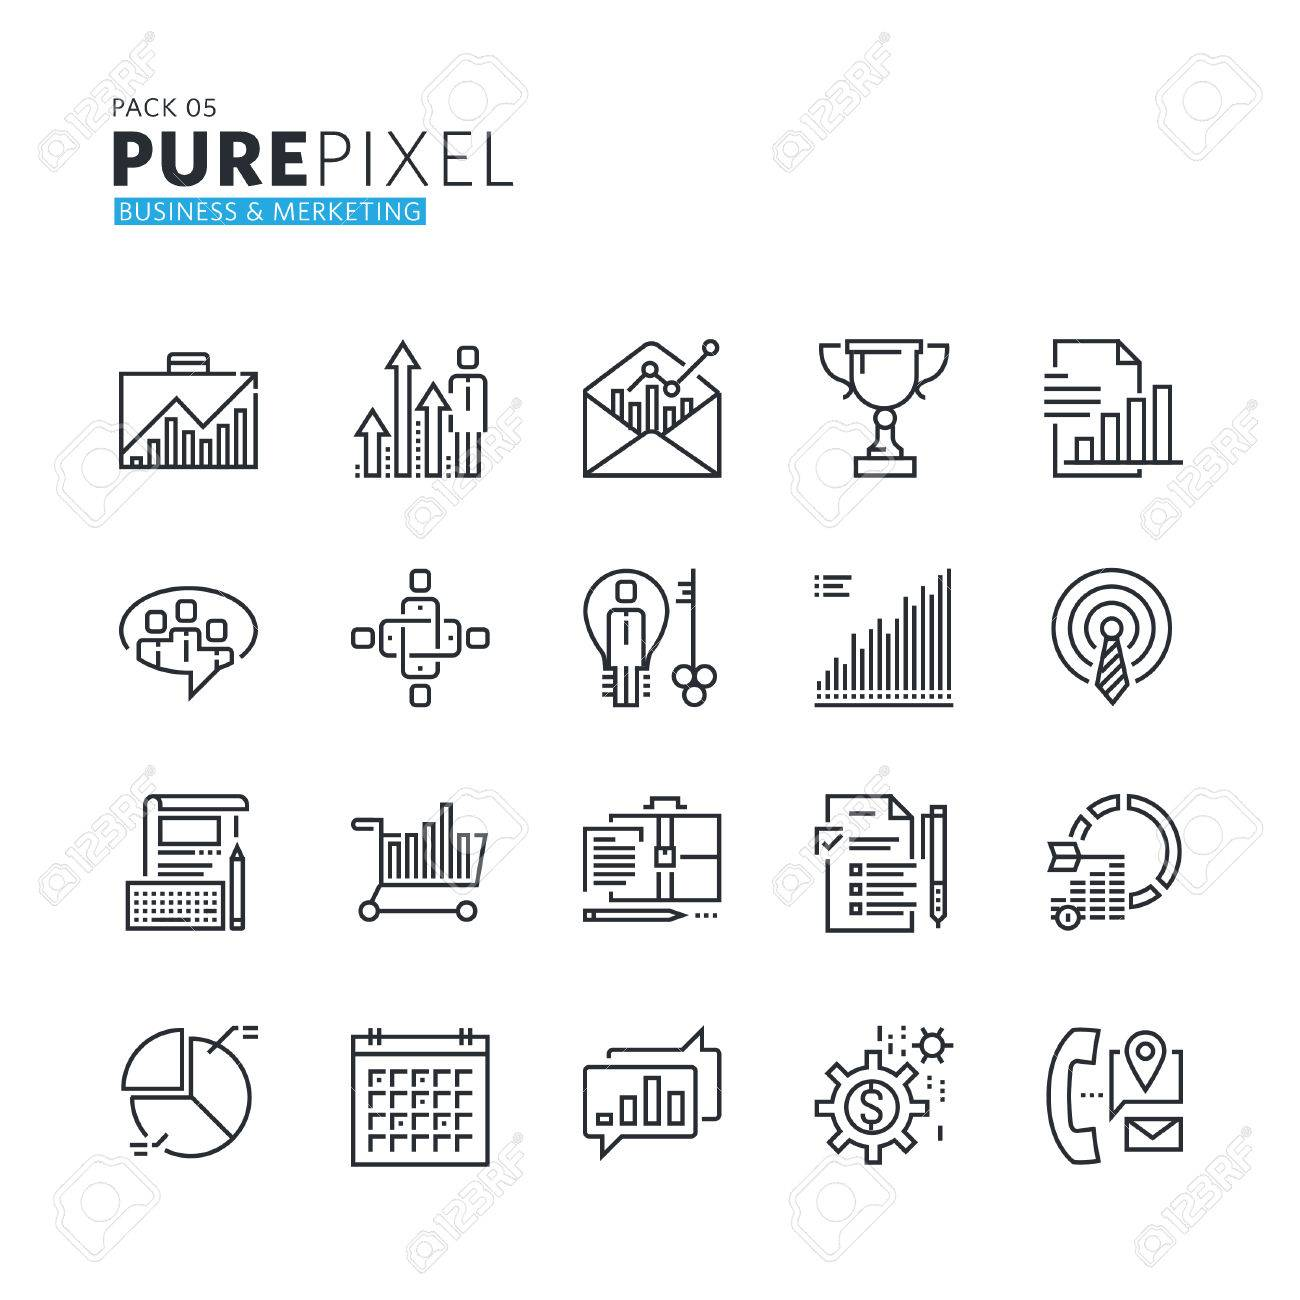 Set of modern thin line pixel perfect icons of business and marketing. Premium quality icon collection for web design, mobile app, graphic design. - 60381125